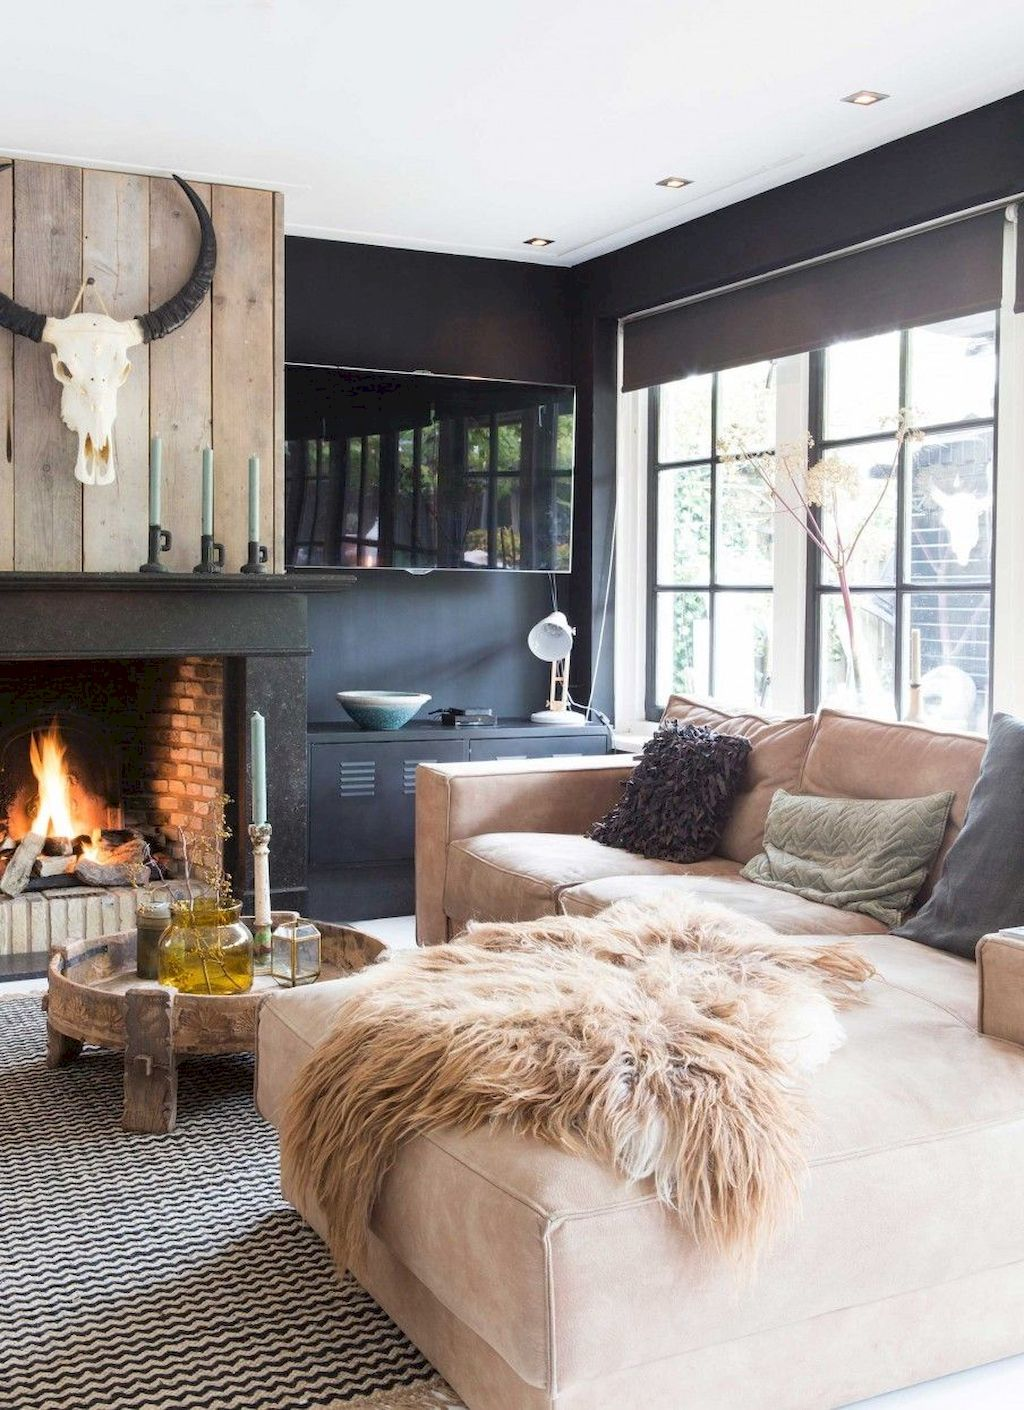 85 Cozy Modern Farmhouse Living Room Decor Ideas #modernfarmhouselivingroom